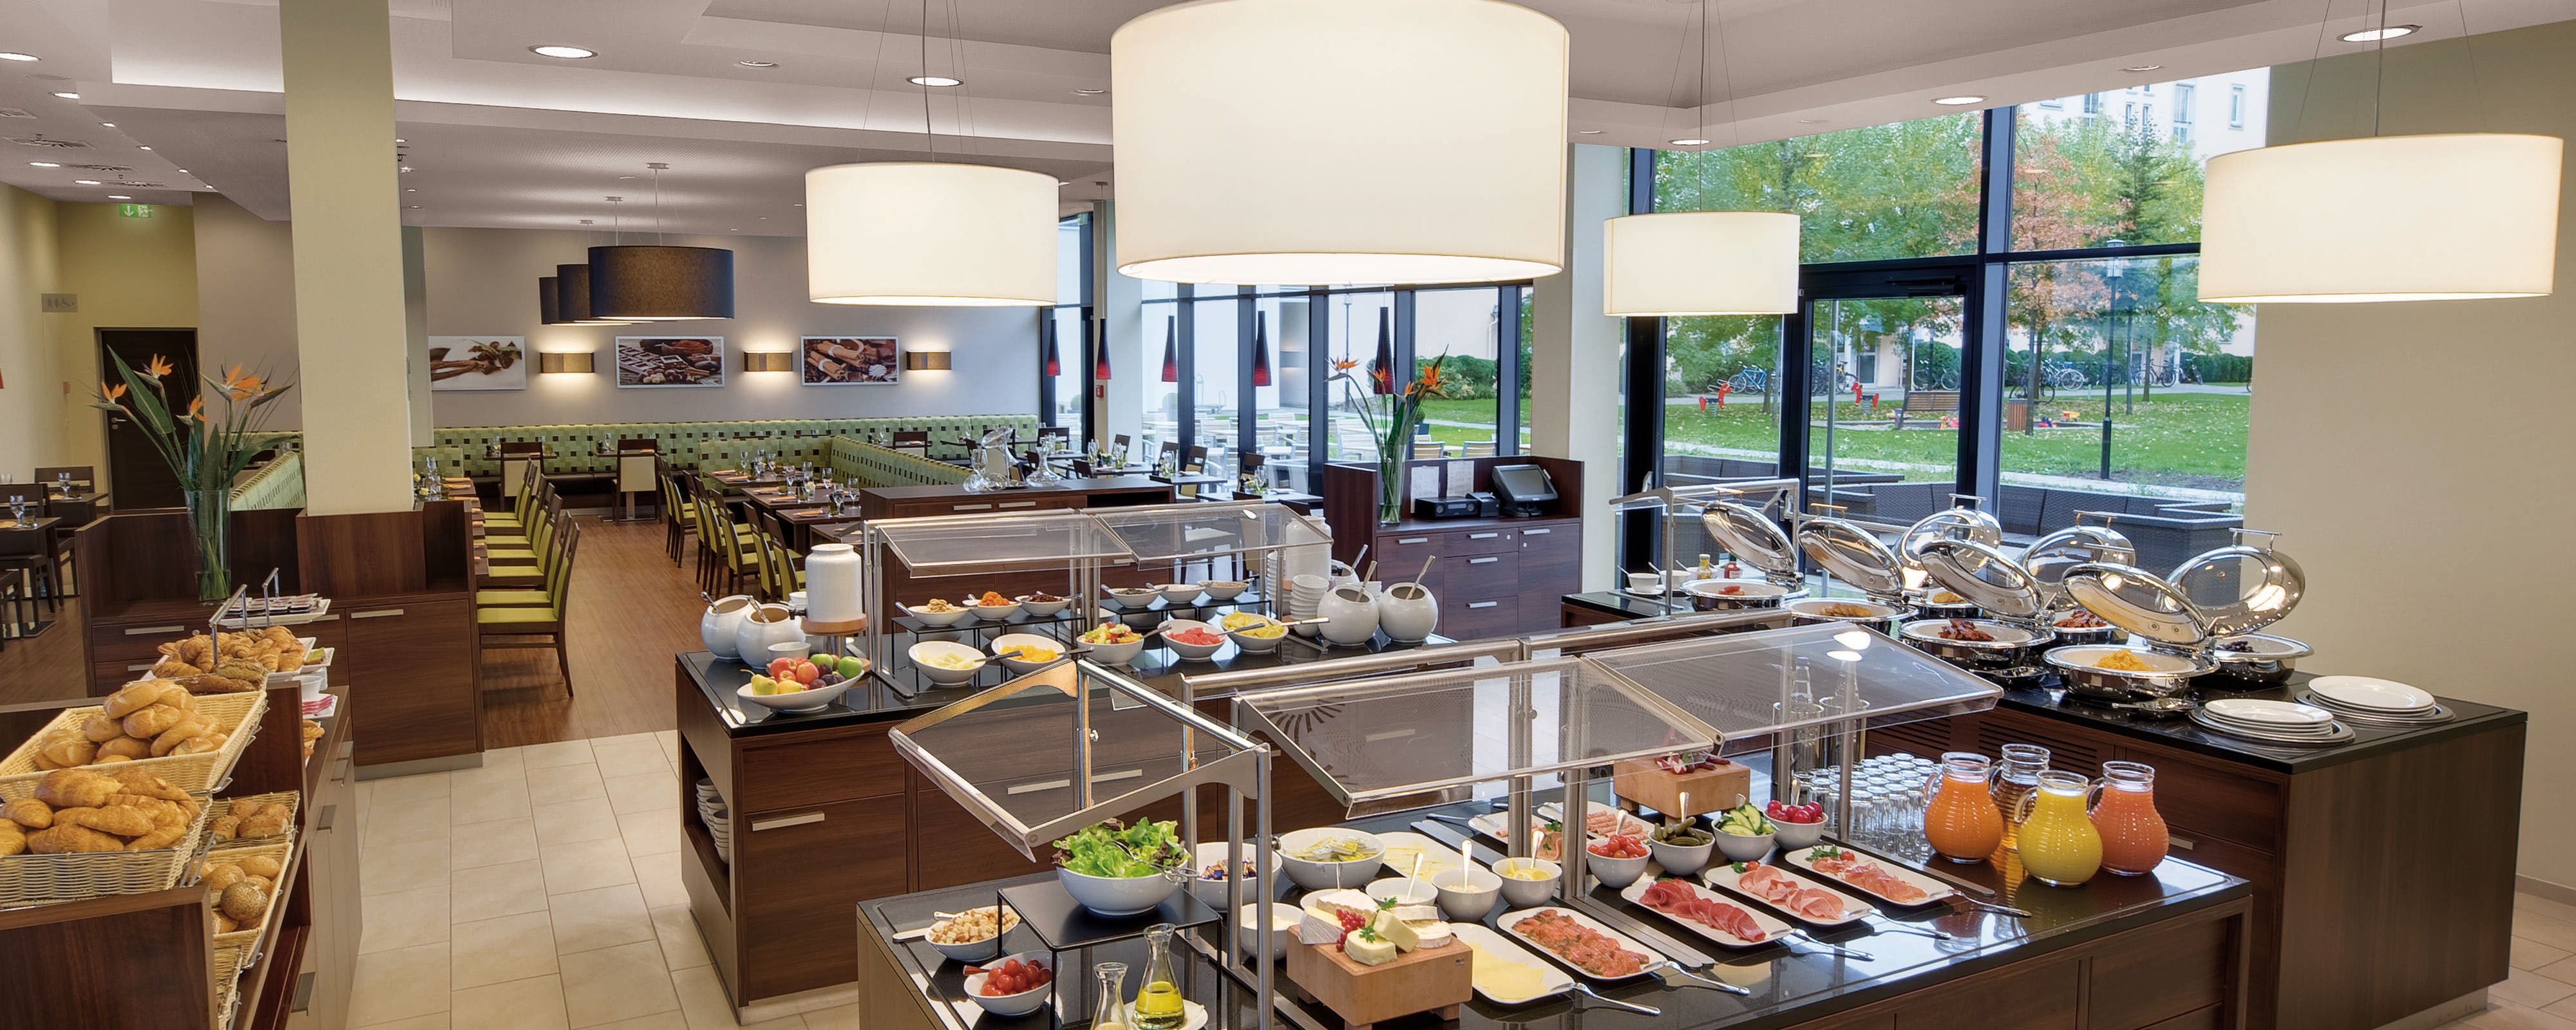 Breakfast Marriott Courtyard Hotel Munich